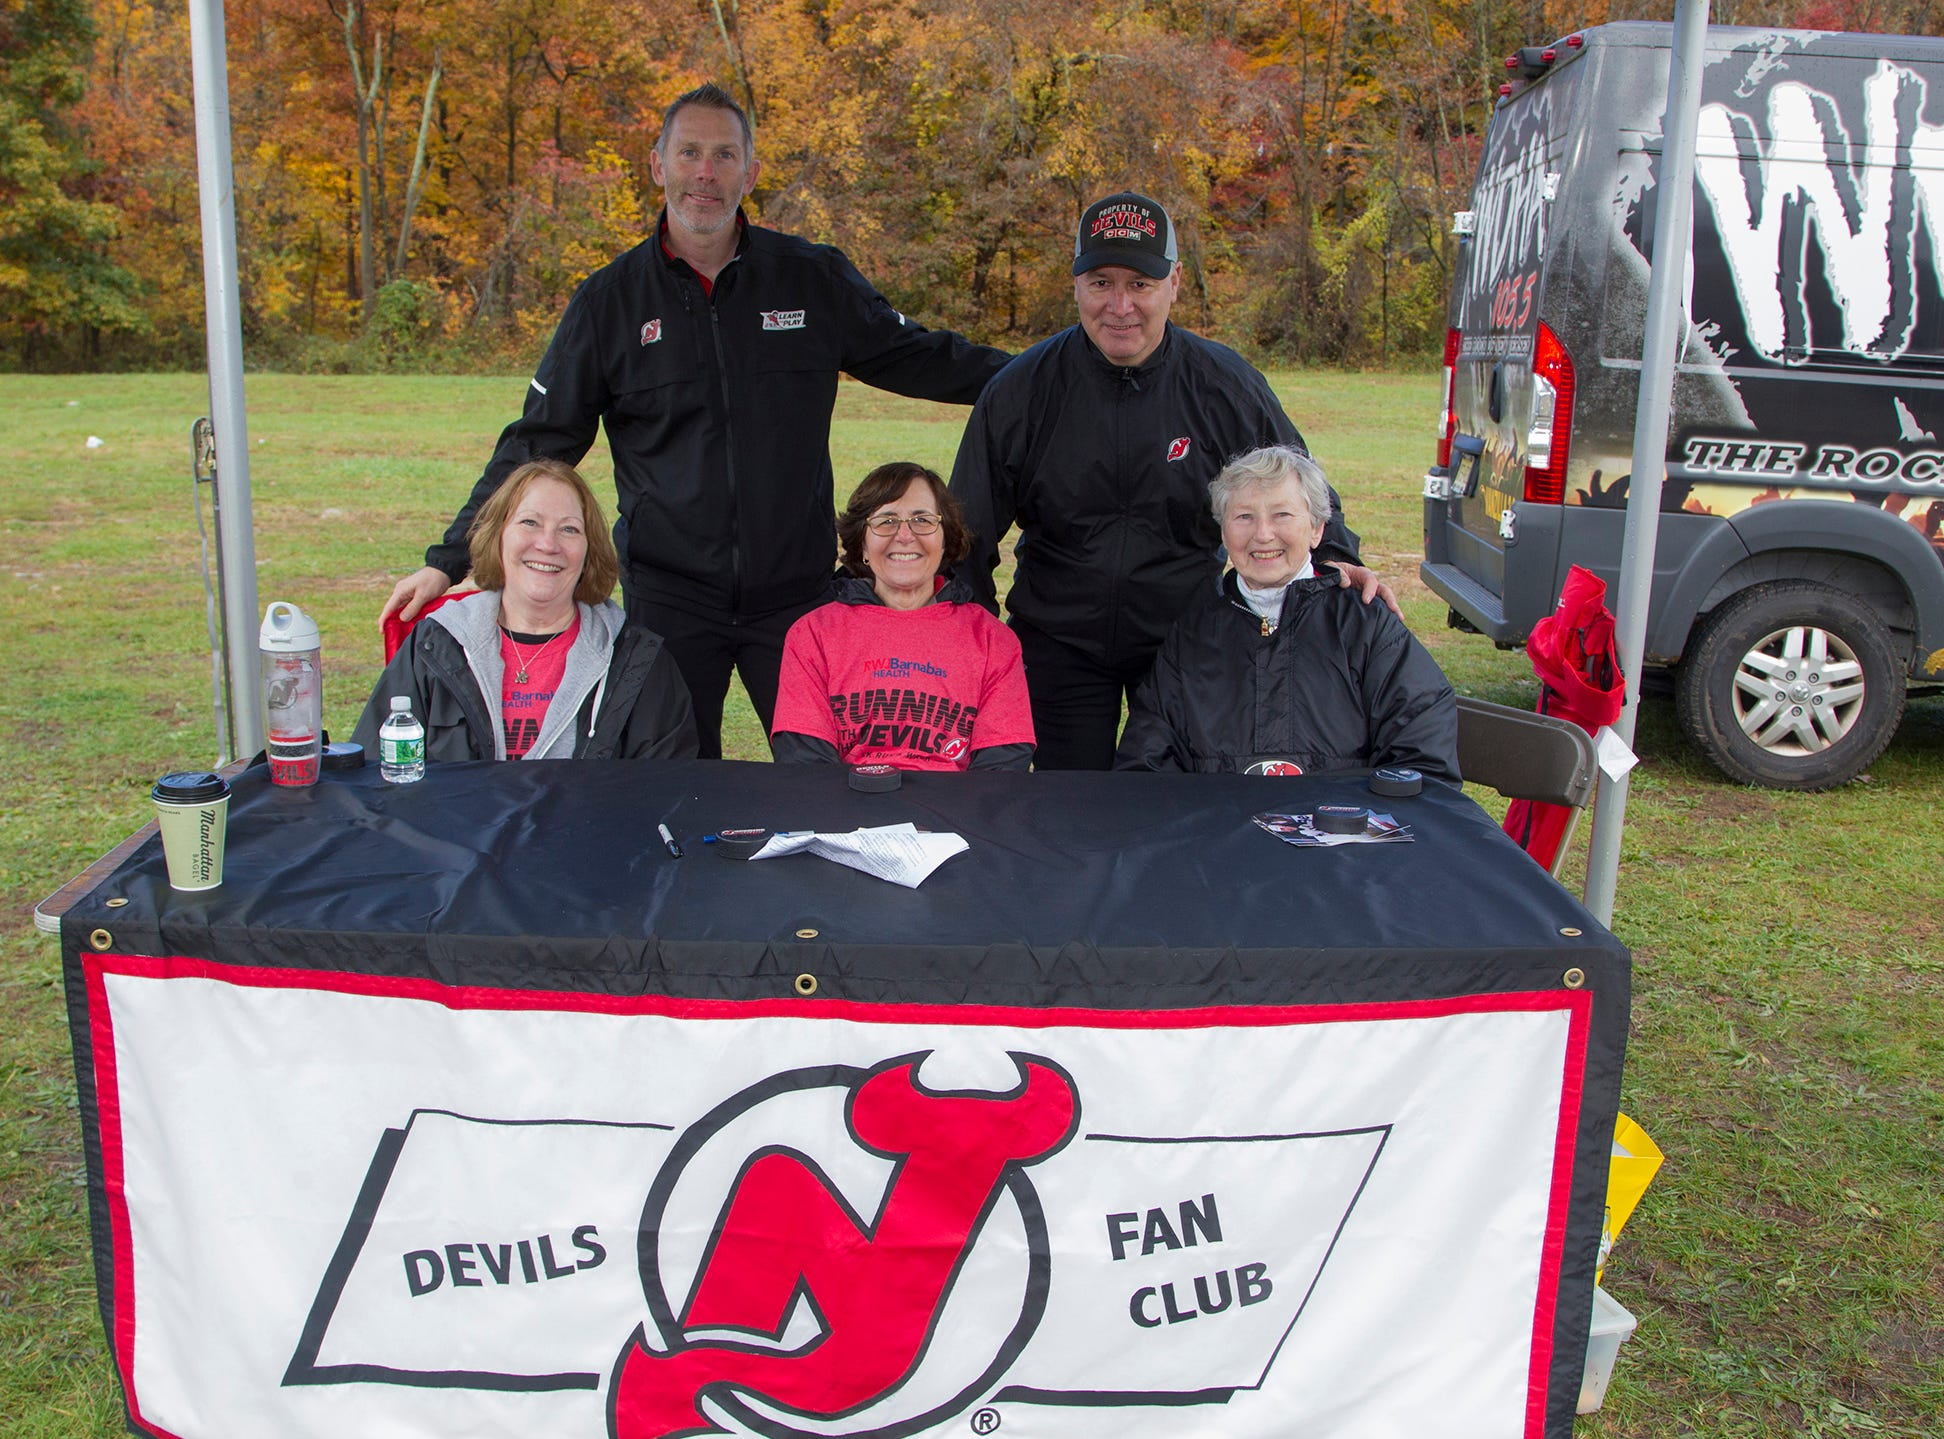 Debbie, Dee, Trudy, Grant Marshall, Bruce Driver. RWJBarnabas Health Running with the Devils 5K Run and Family Fun Walk at South Mountain Recreation in West Orange. 10/03/2018